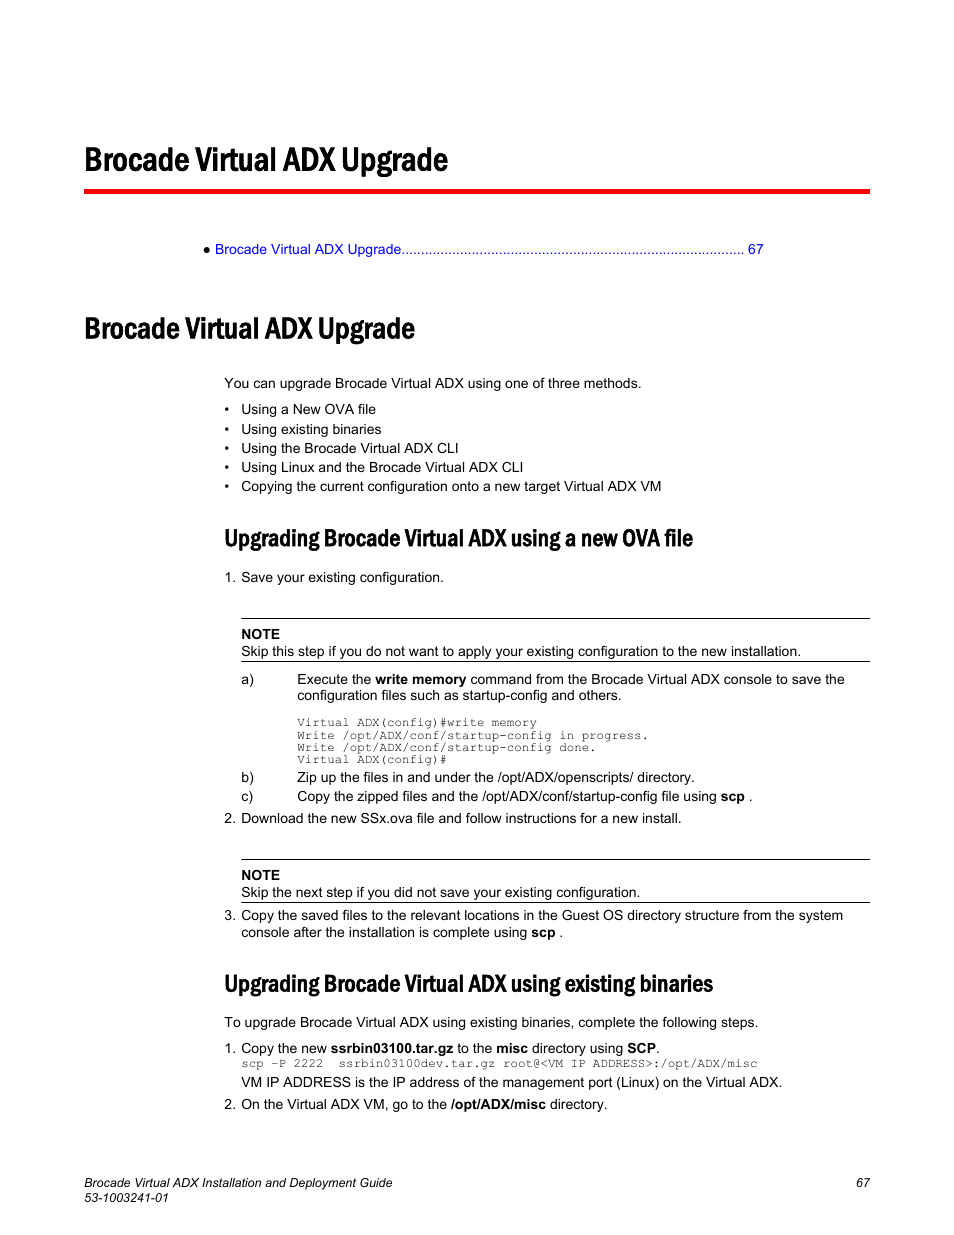 Brocade virtual adx upgrade, Upgrading brocade virtual adx